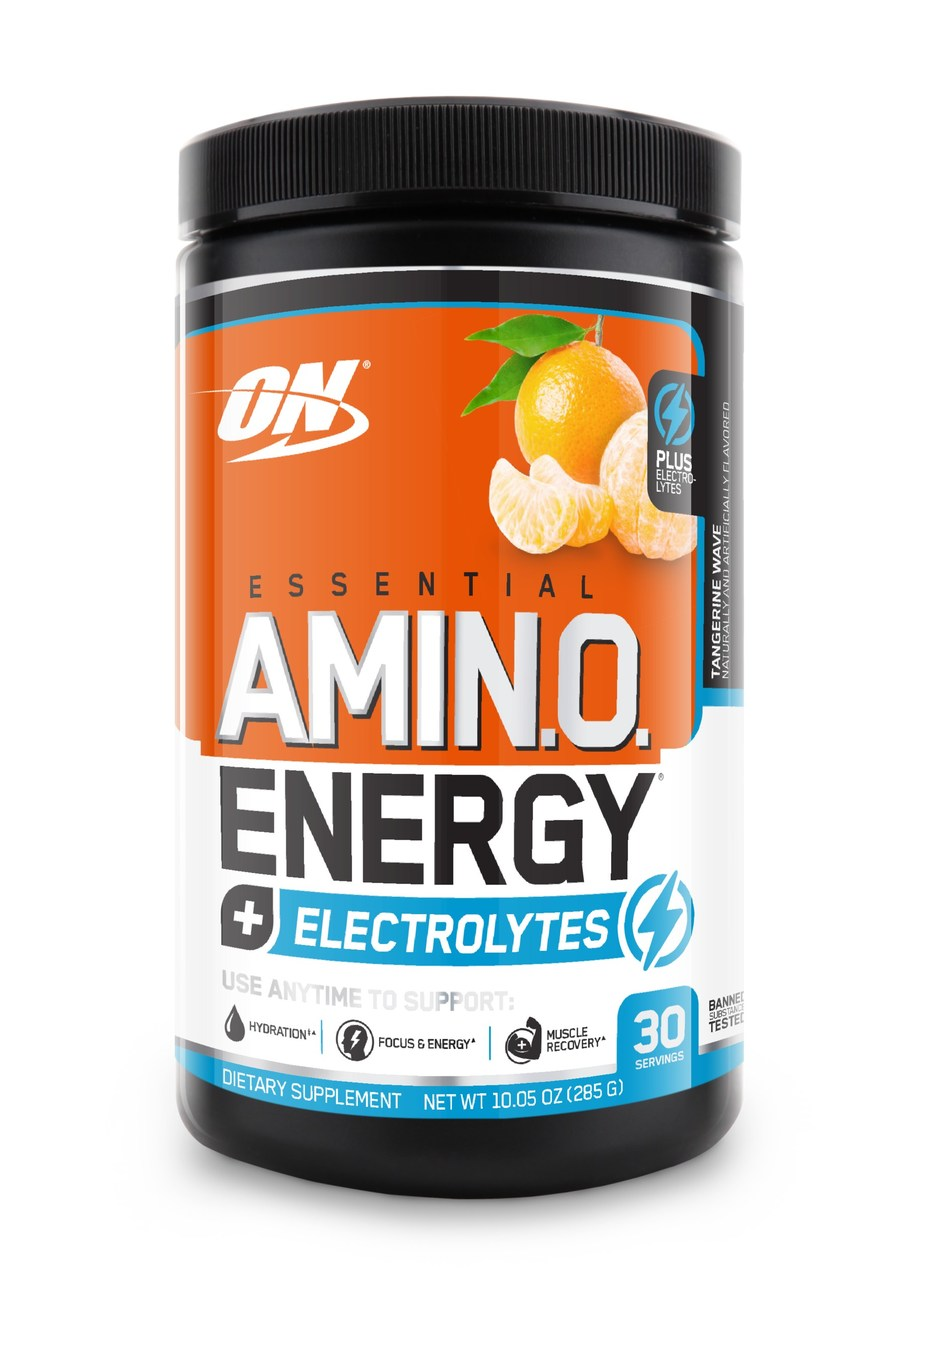 Optimum Nutrition ESSENTIAL AMIN.O. ENERGY Plus Electrolytes™ contains amino acids to help support muscle recovery and natural caffeine for energy plus electrolytes to replace the electrolytes lost through sweat